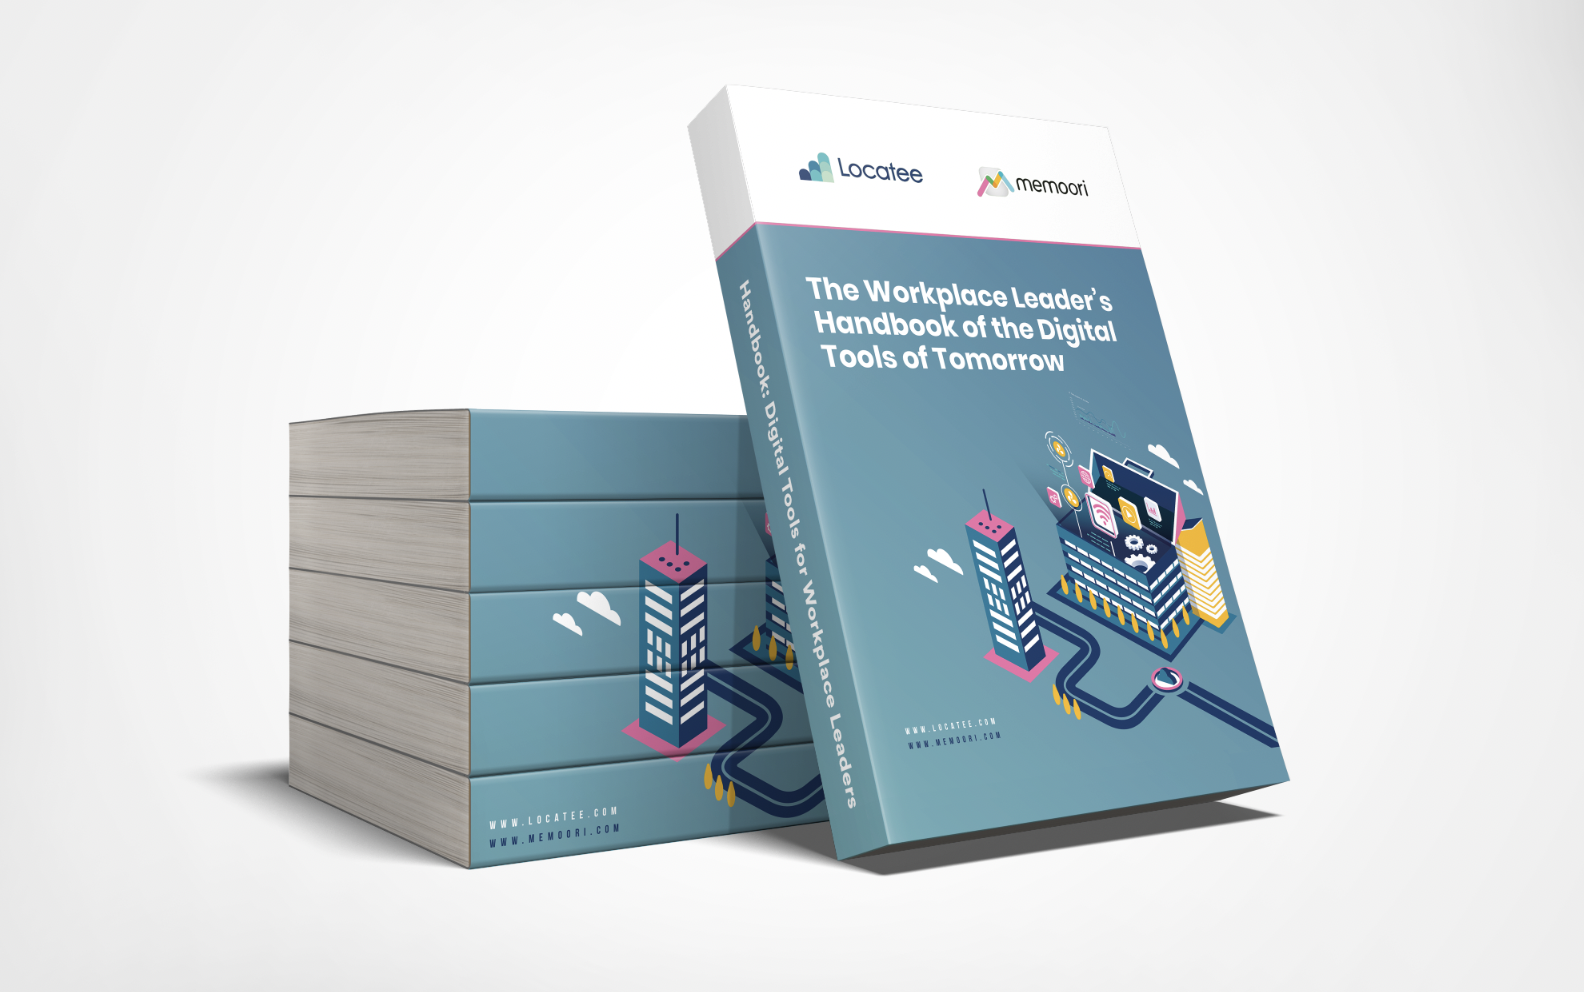 New Handbook: The Digital Tools of Tomorrow